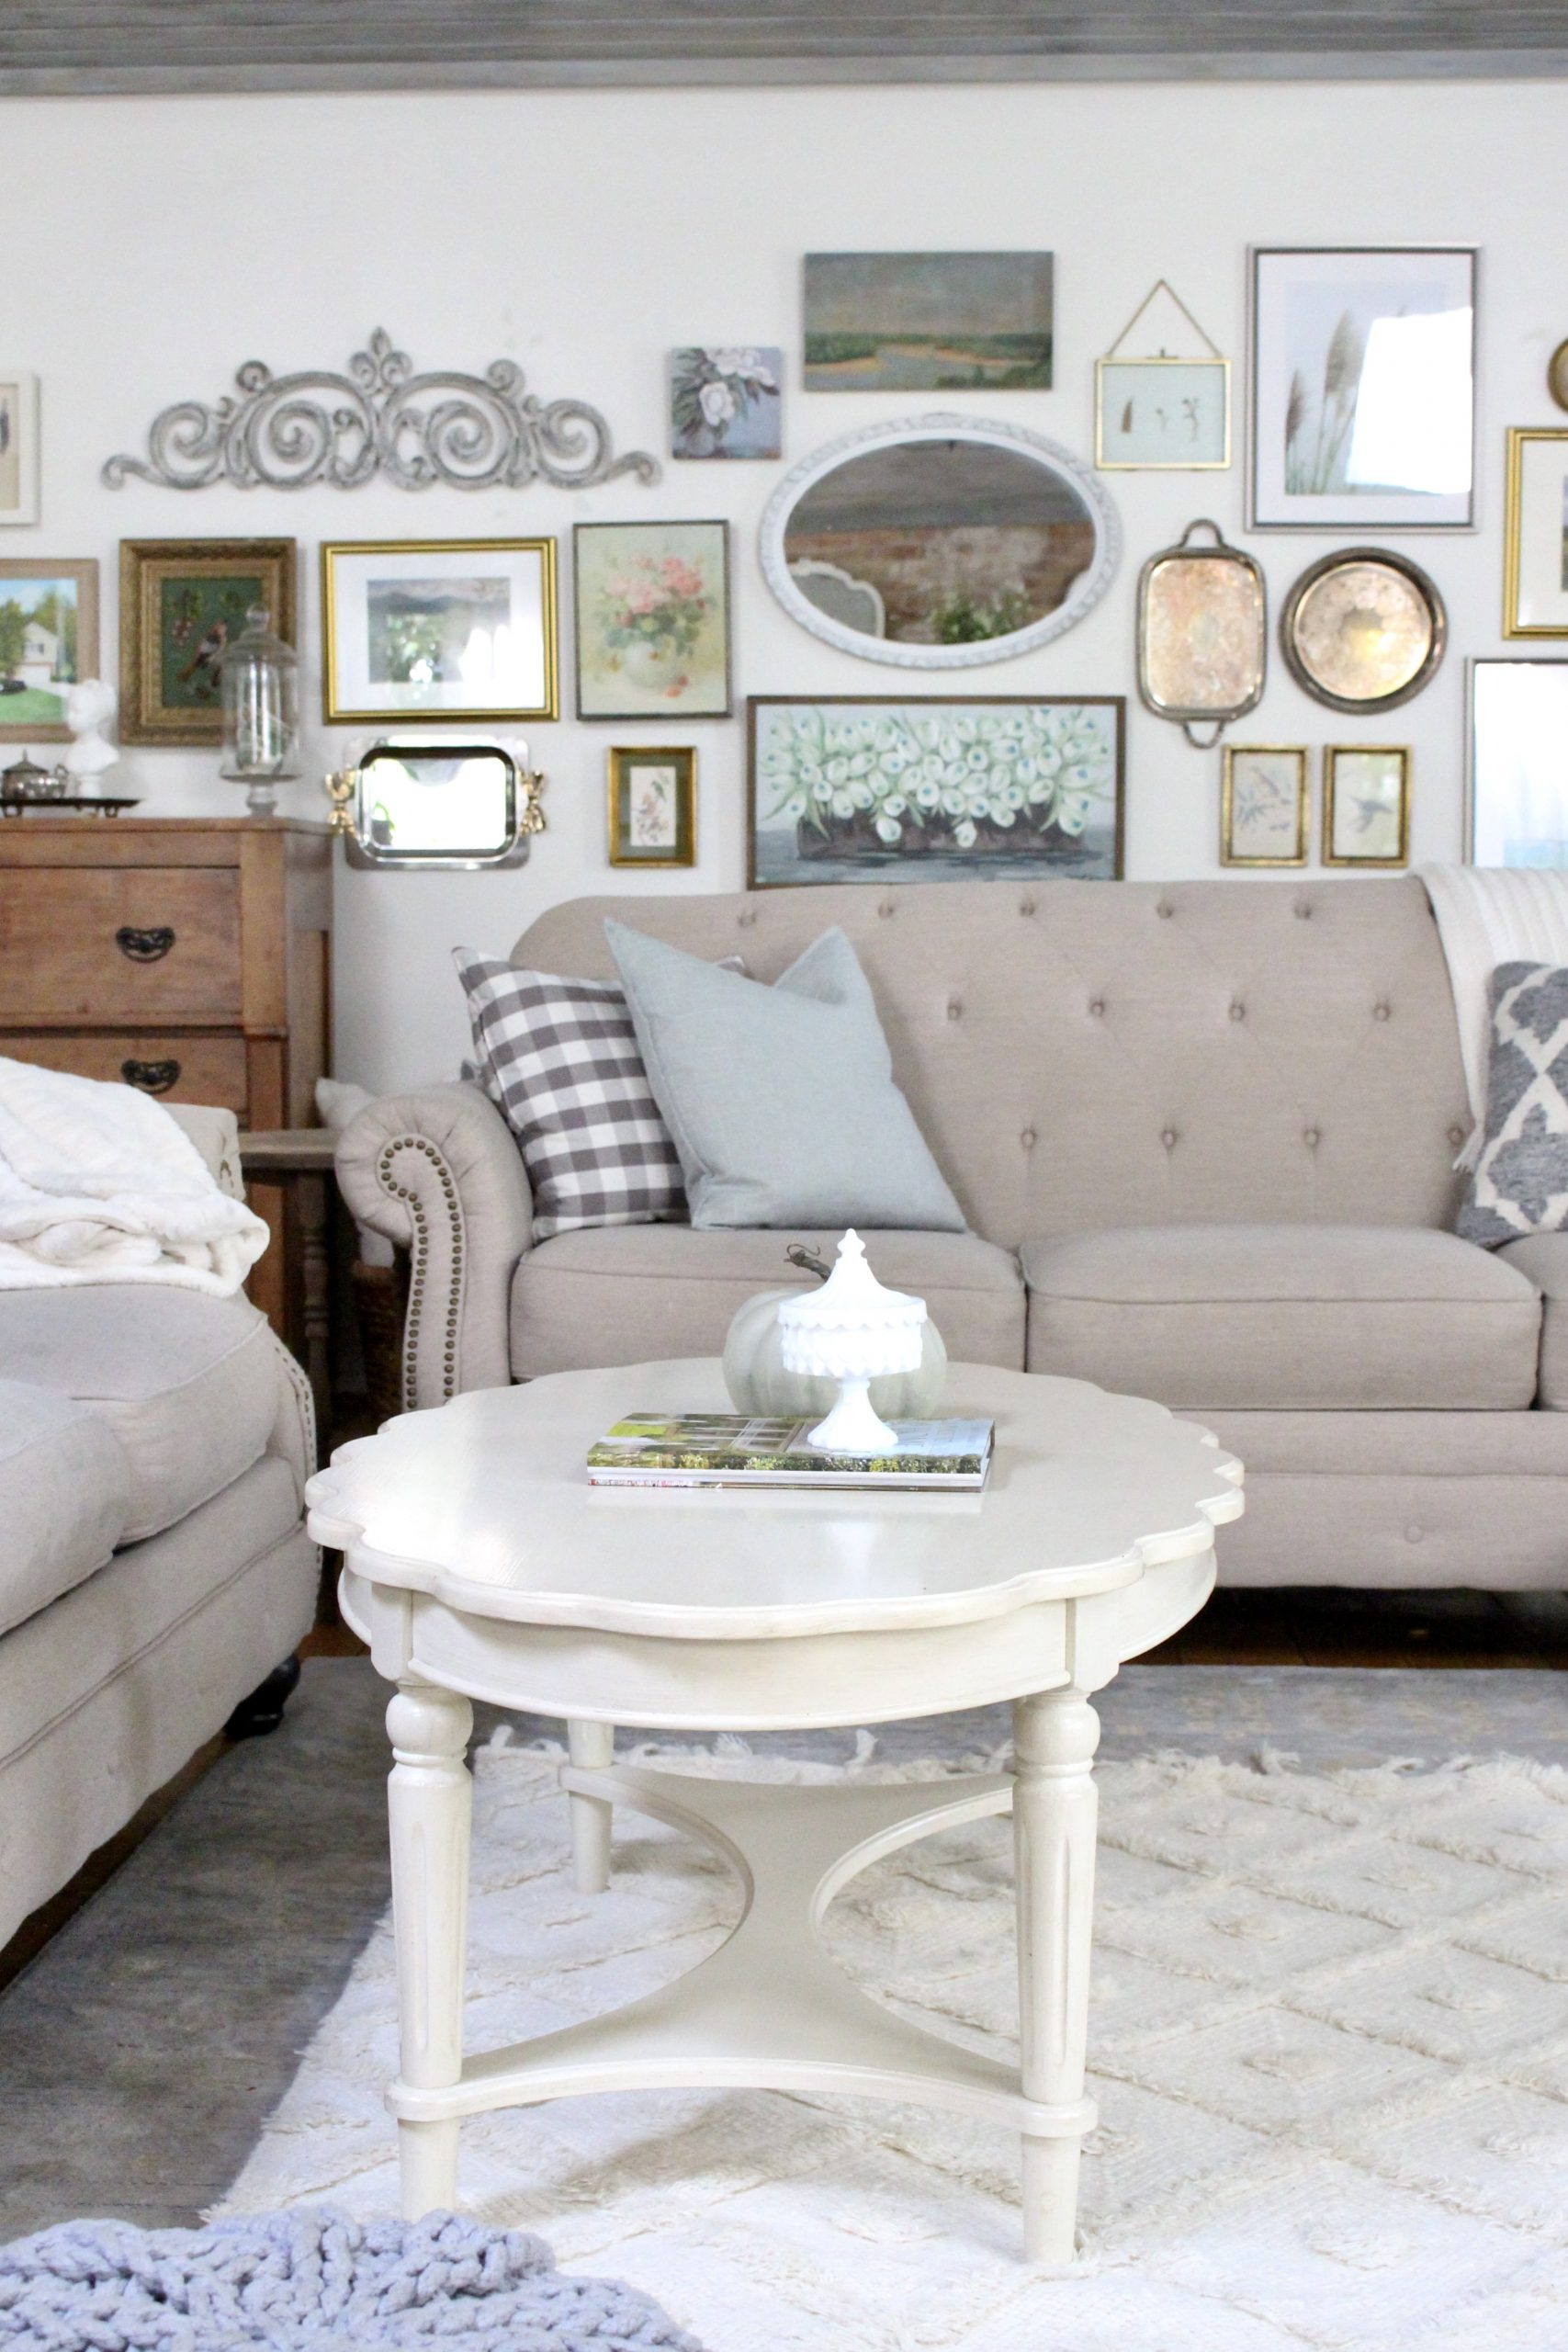 Fall Family Room Tour with Textures and Cozy details~ White Cottage Home & Living